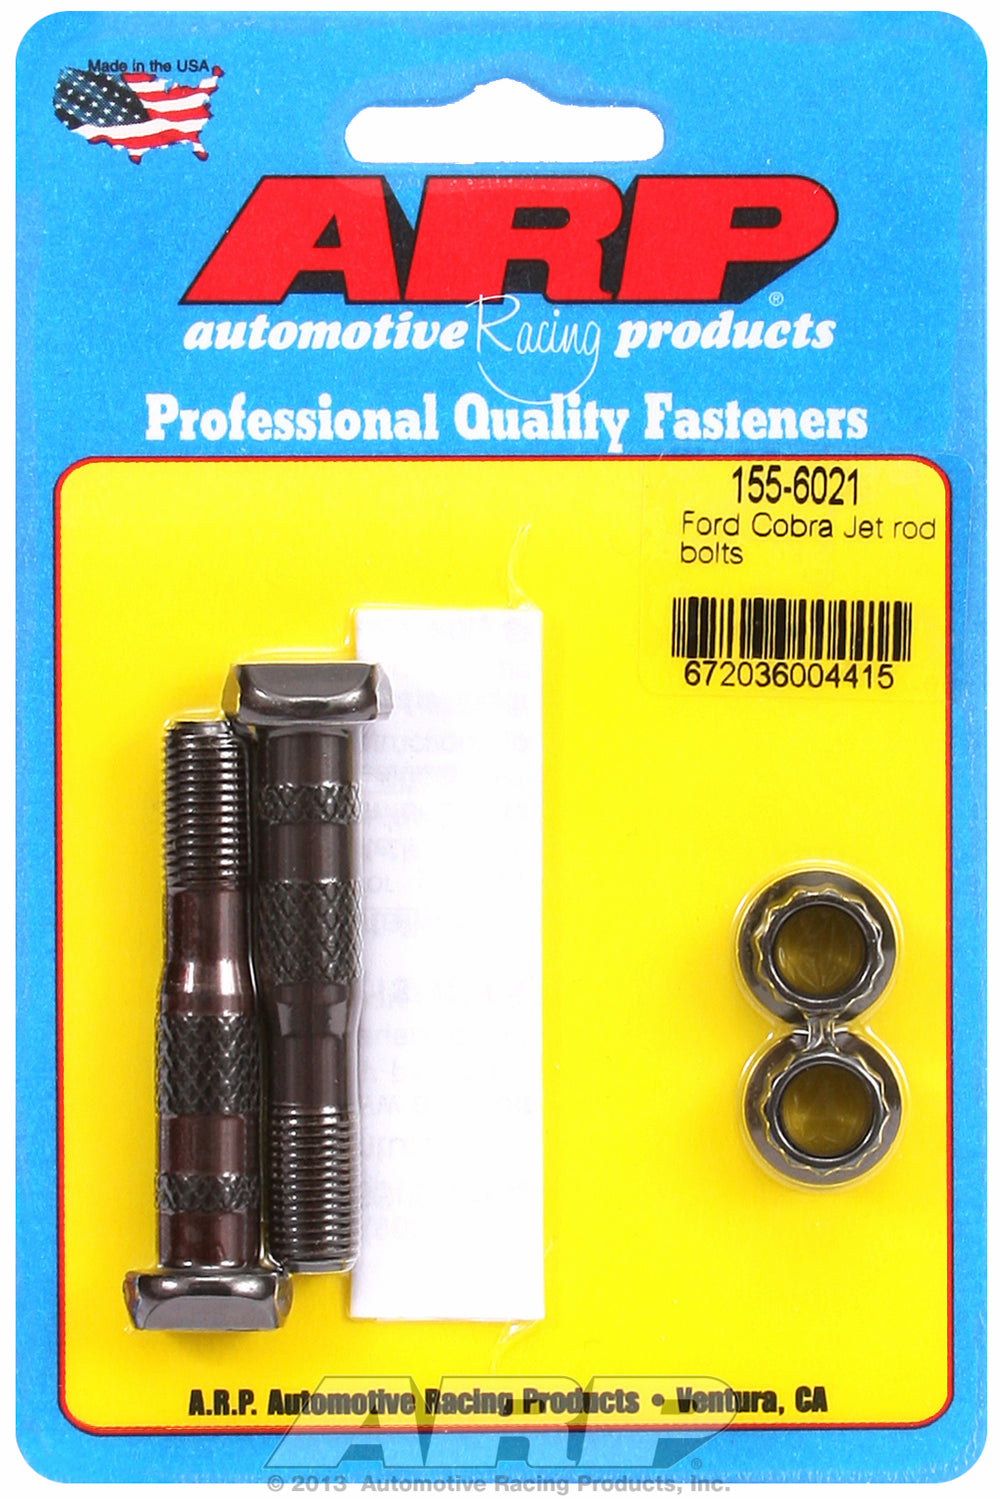 Hi-Perf 8740 (2-pc) Rod Bolt Kit for Ford 428 Cobra Jet (replacement for 13/32˝ bolt)